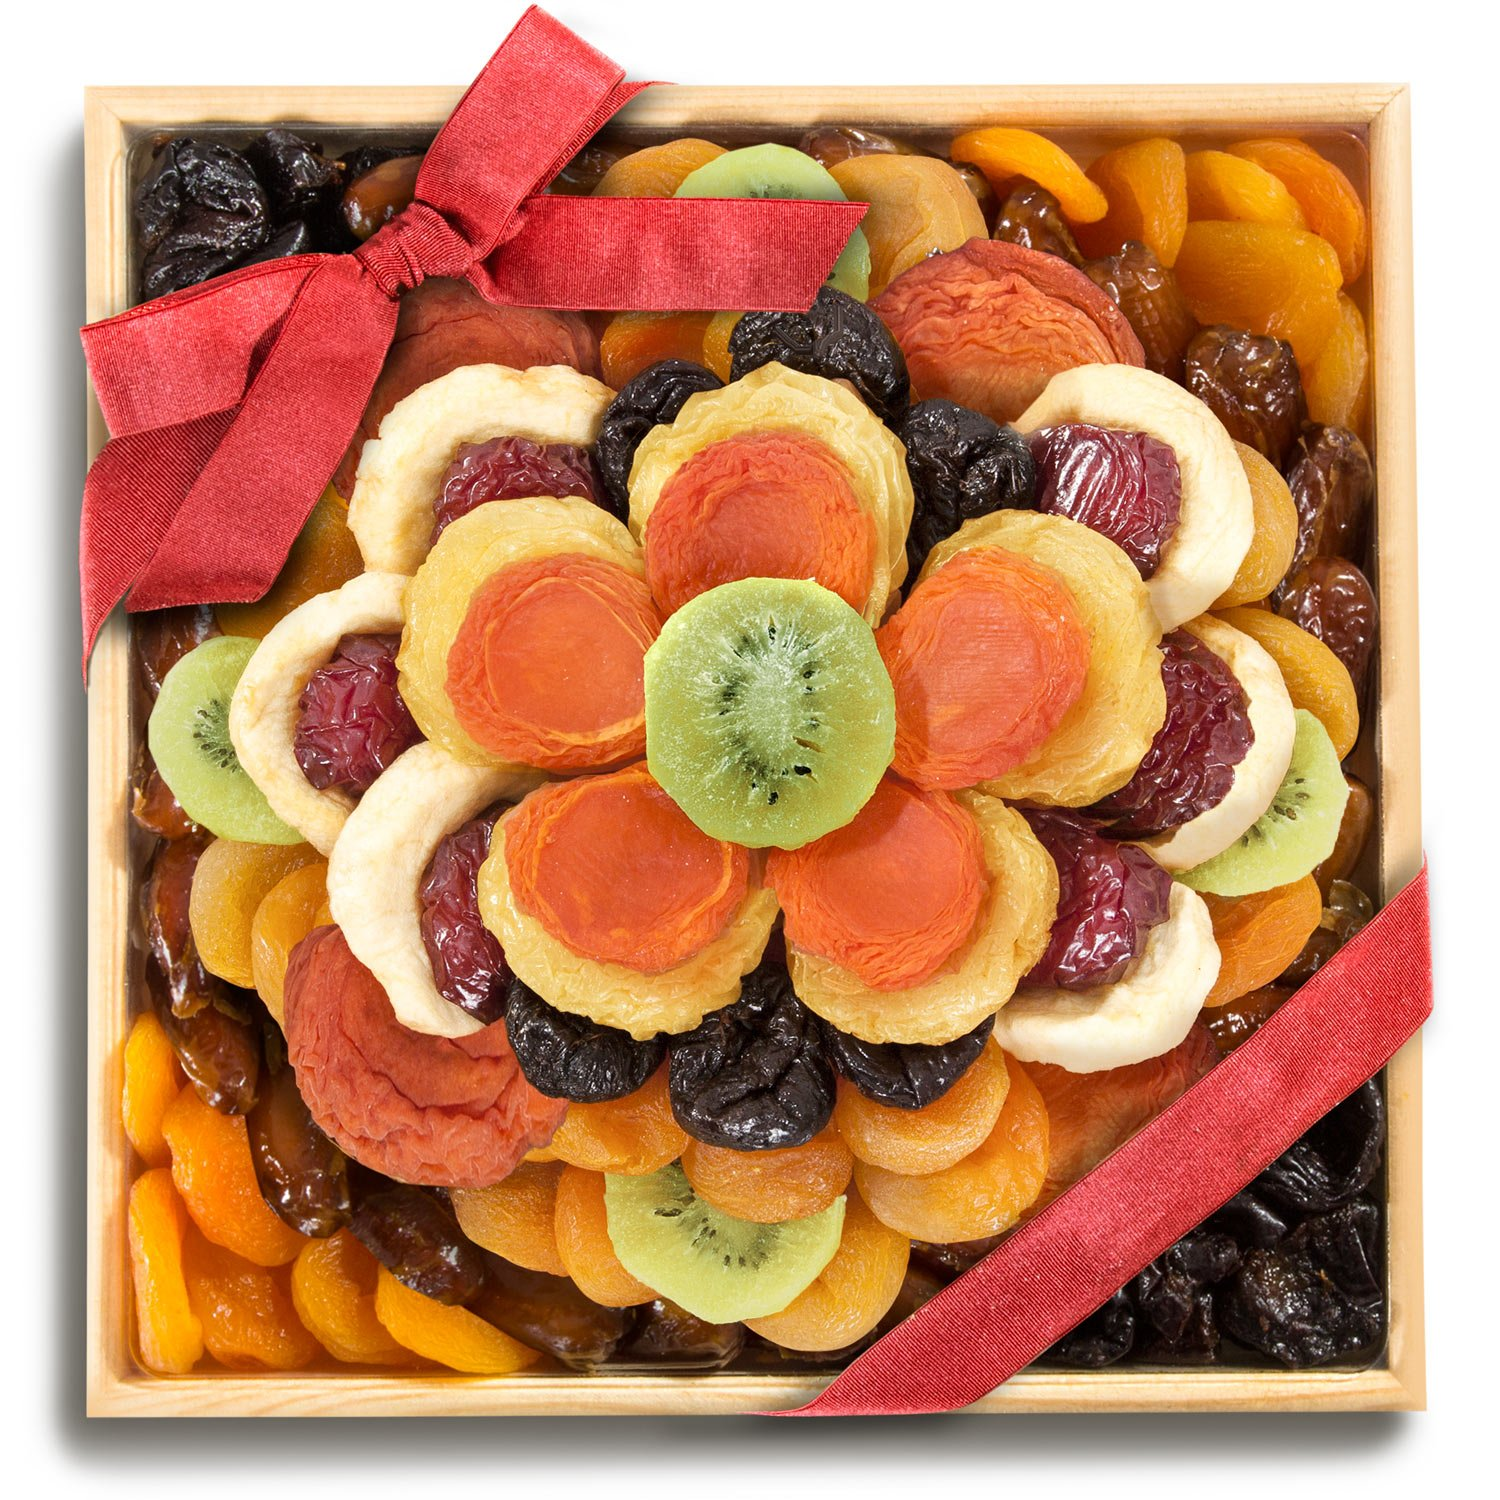 Sweet Bloom Dried Fruit Deluxe Tray Basket Arrangement for Holiday Birthday Healthy Snack Business Kosher